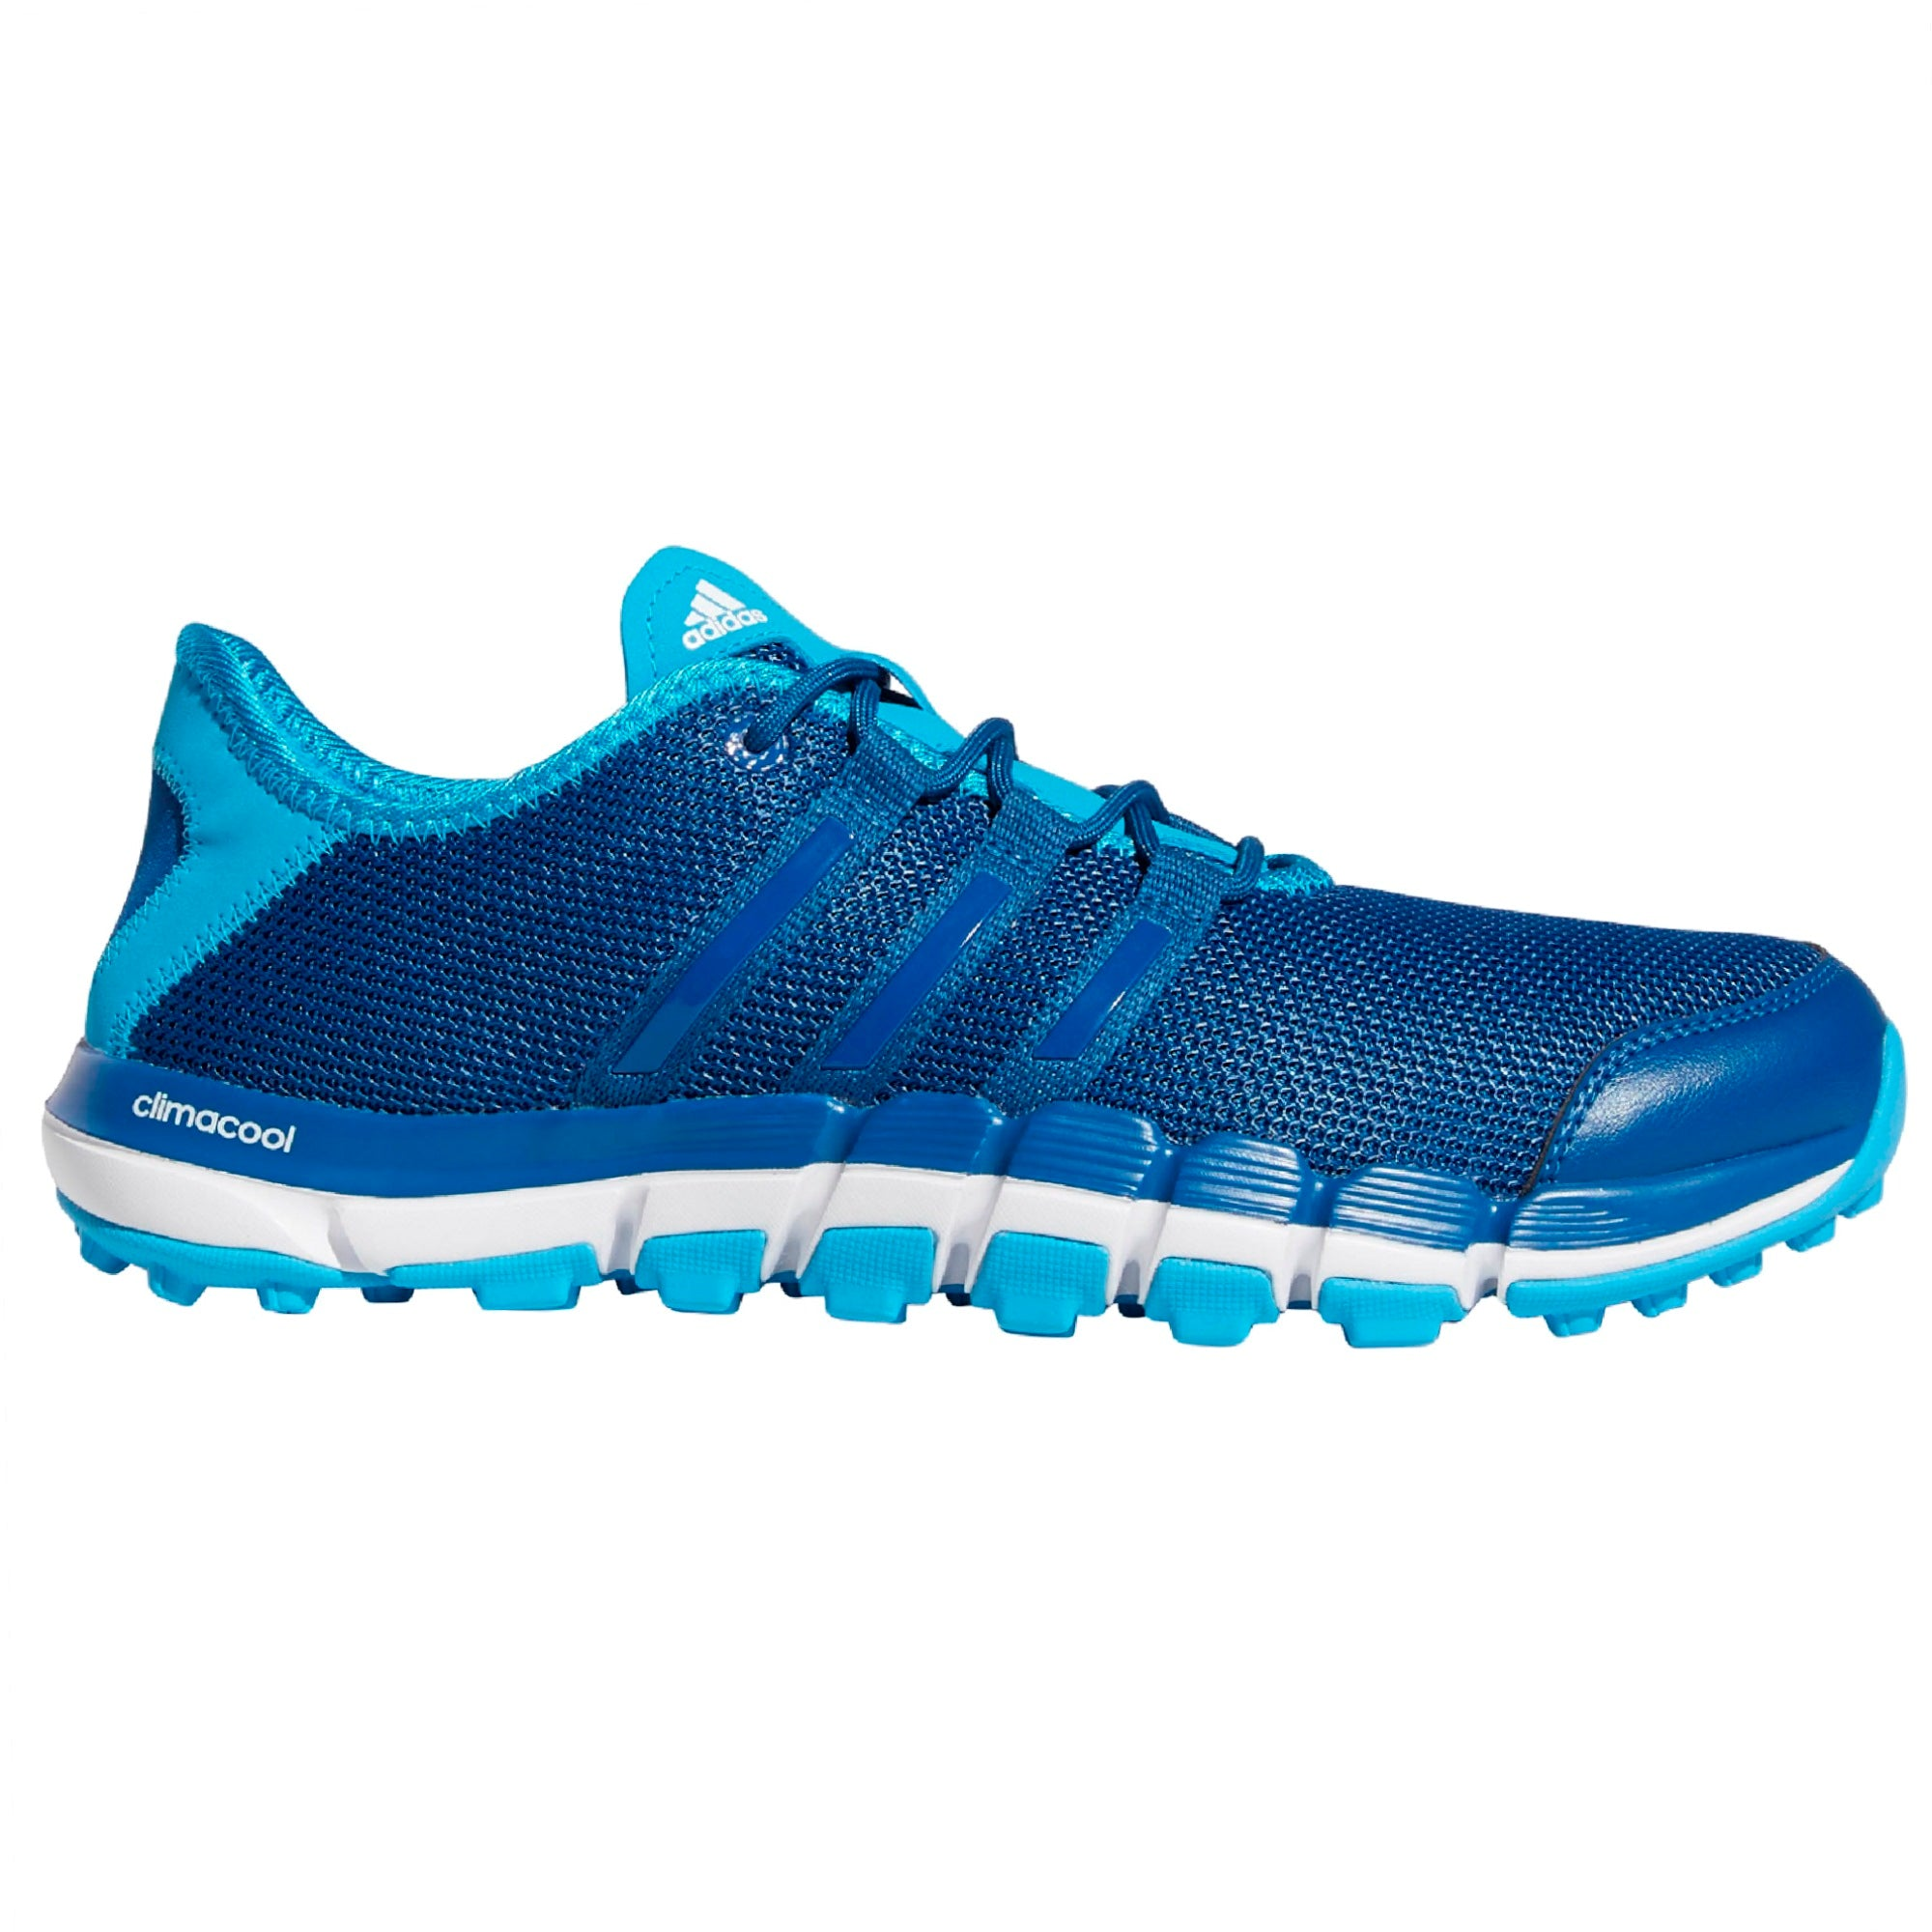 climacool st golf shoes